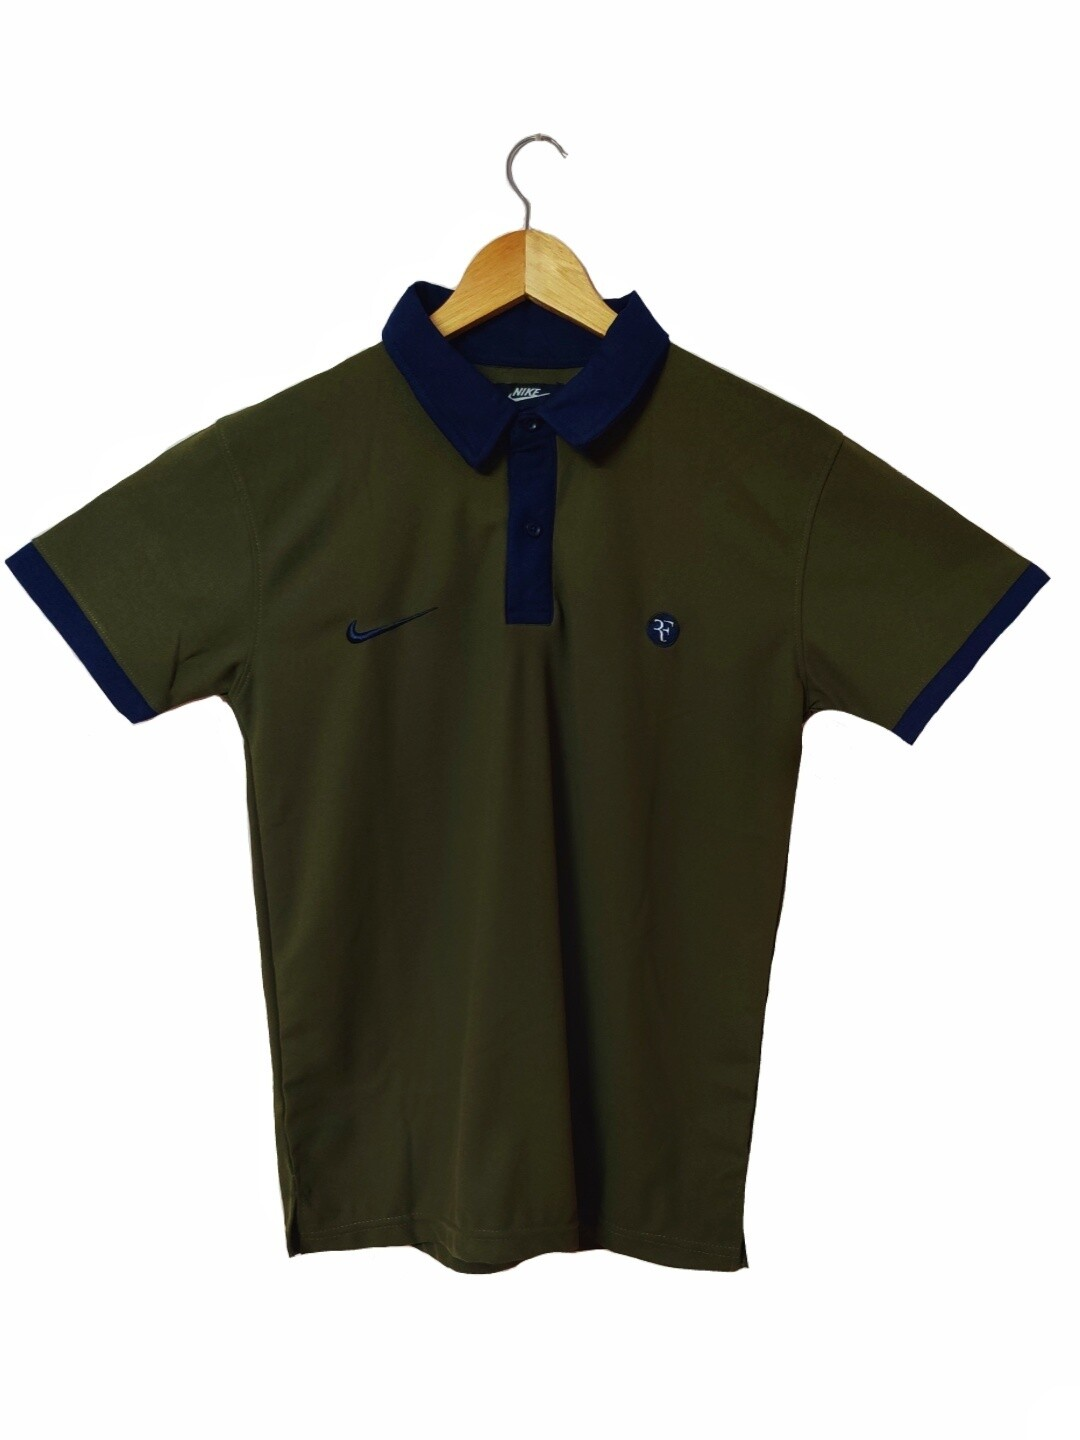 Roger Federer Limited edition Polo Tshirt